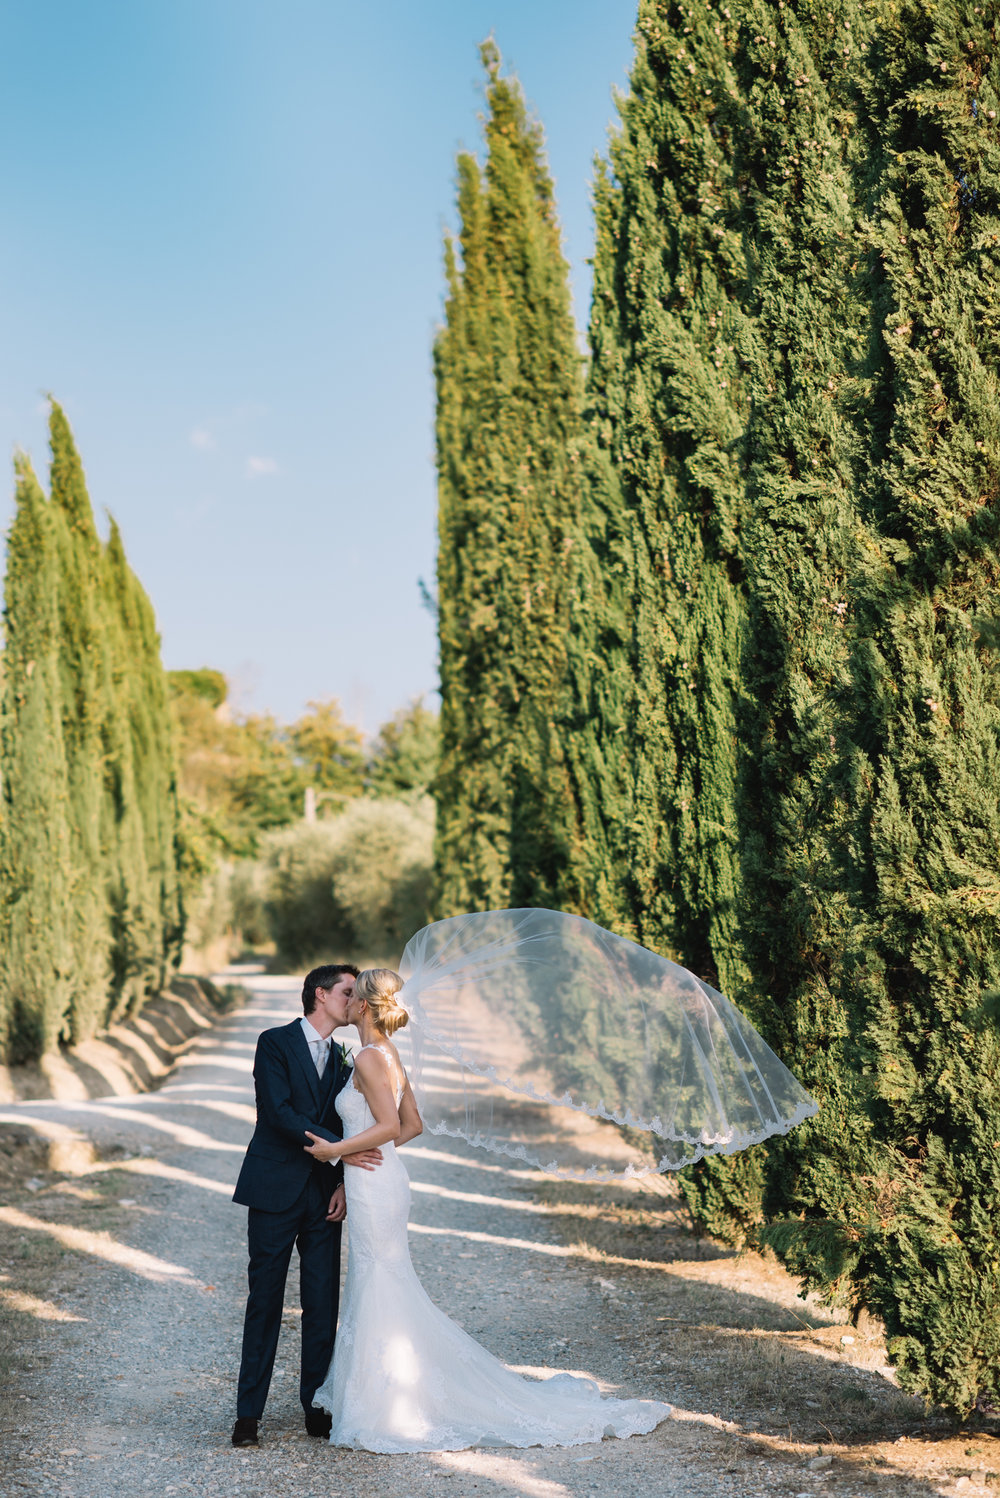 Wedding_Photographer_in_Tuscany_Italy-019.jpg